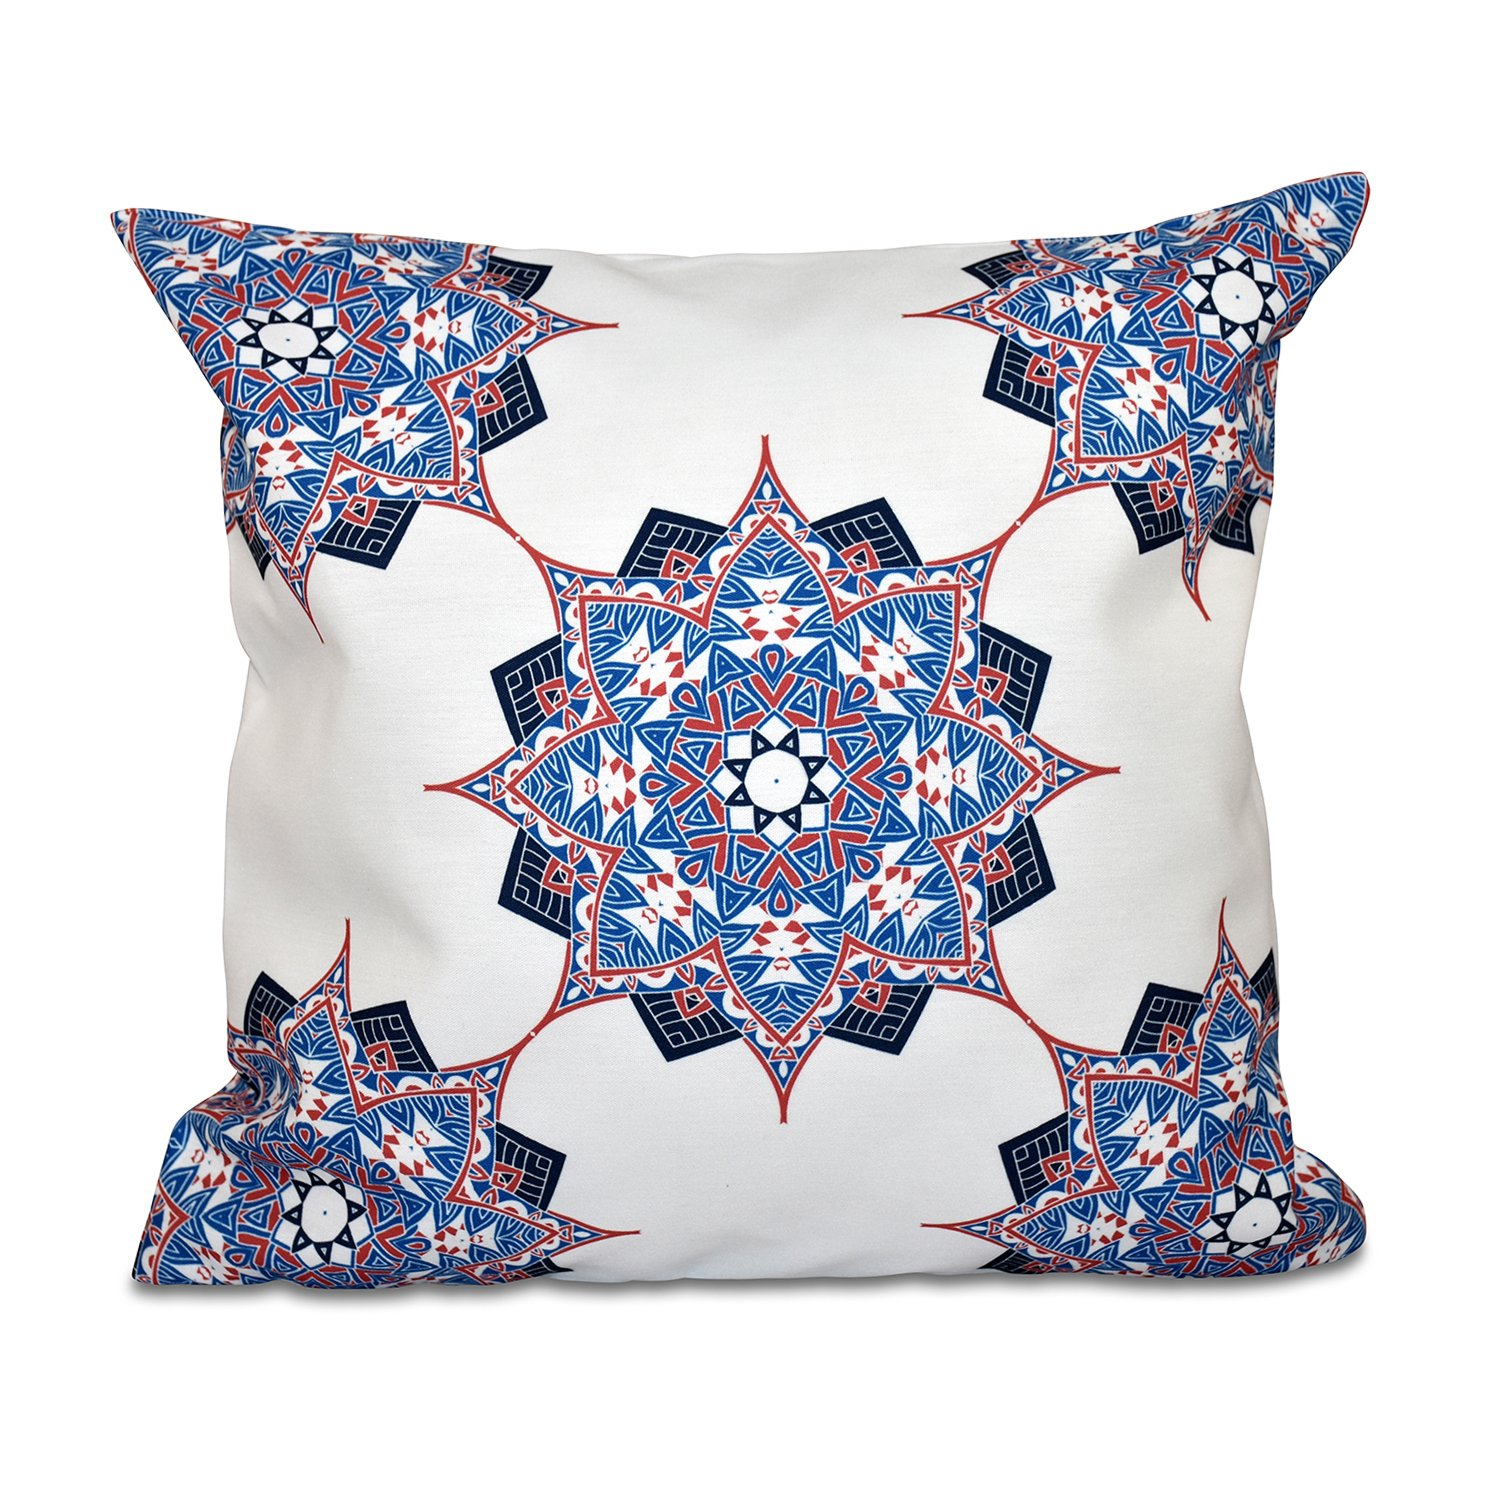 E by design O5PGN553BL40BL14-16 Printed Outdoor Pillow